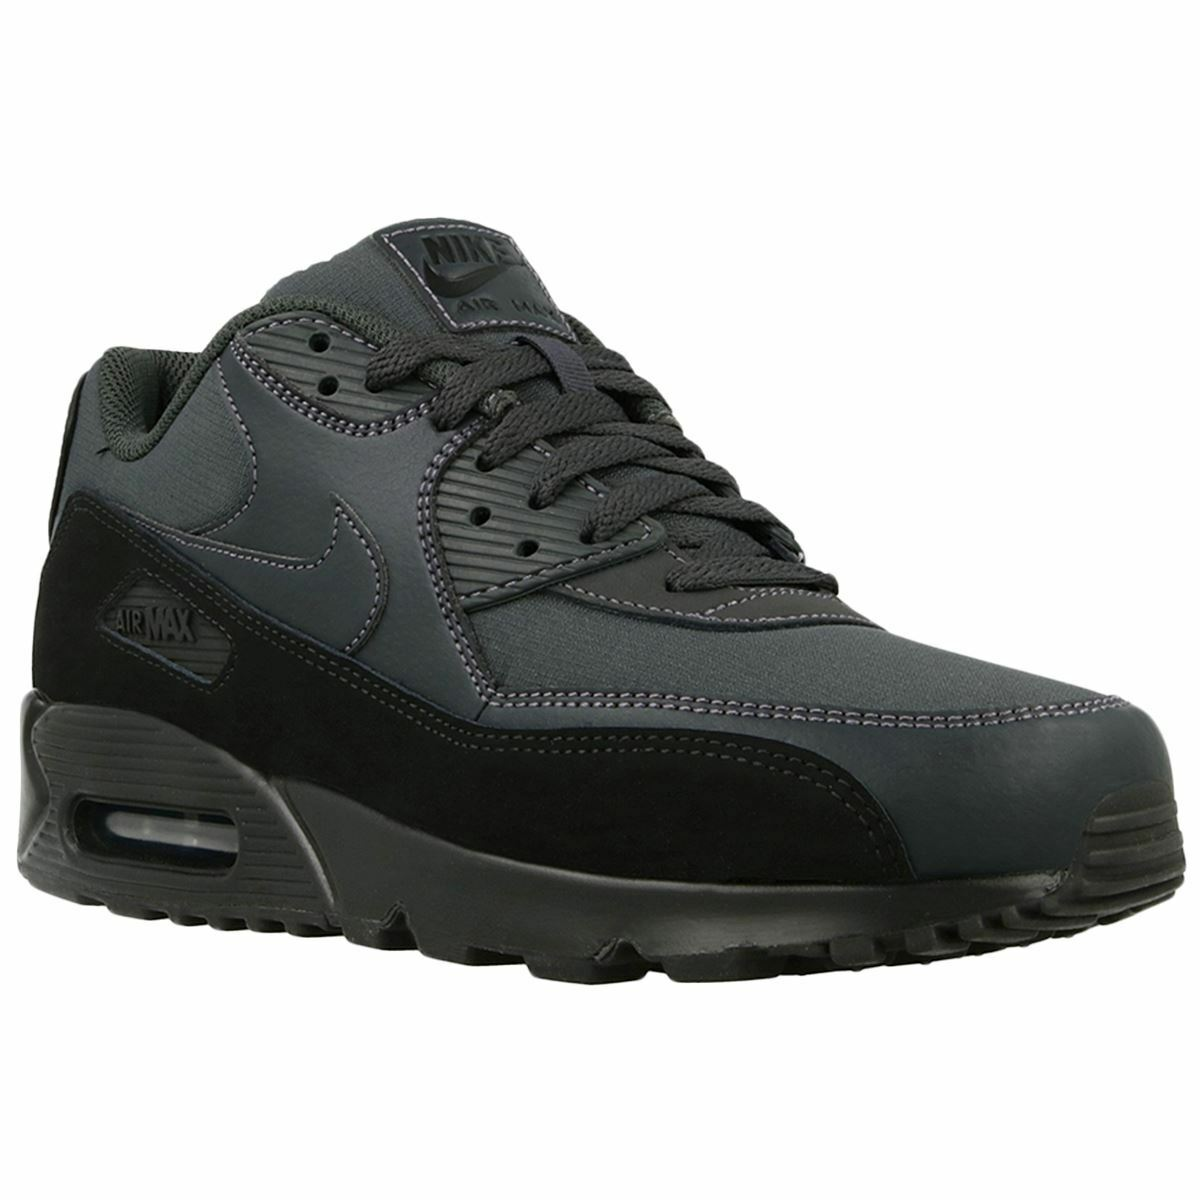 Nike Air Max 90 Ess Coated Leather Low-Top Running Sneakers Mens Trainers